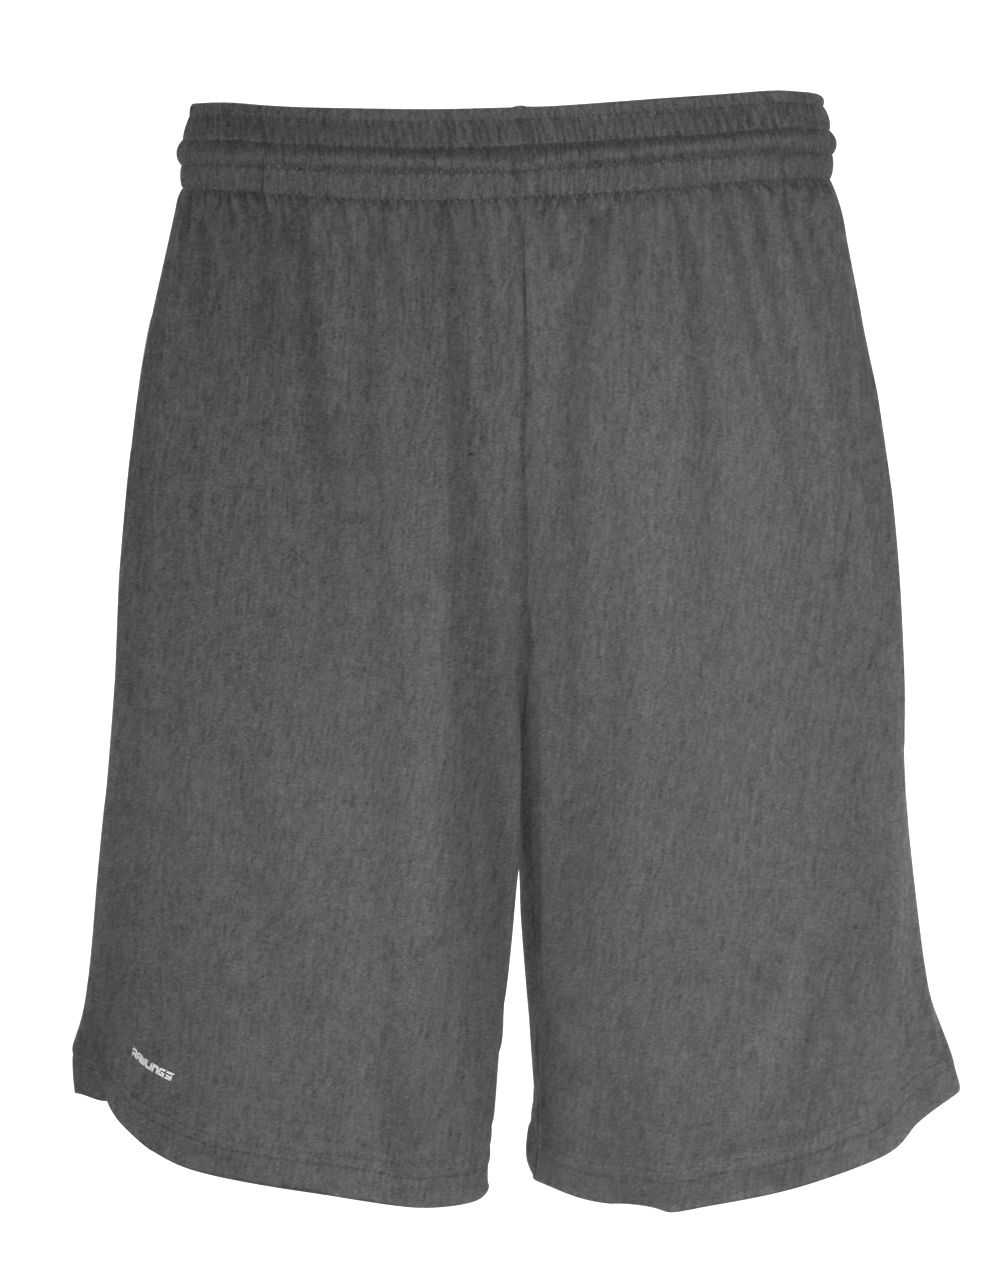 Picture of Rawlings Tenacity Training Shorts